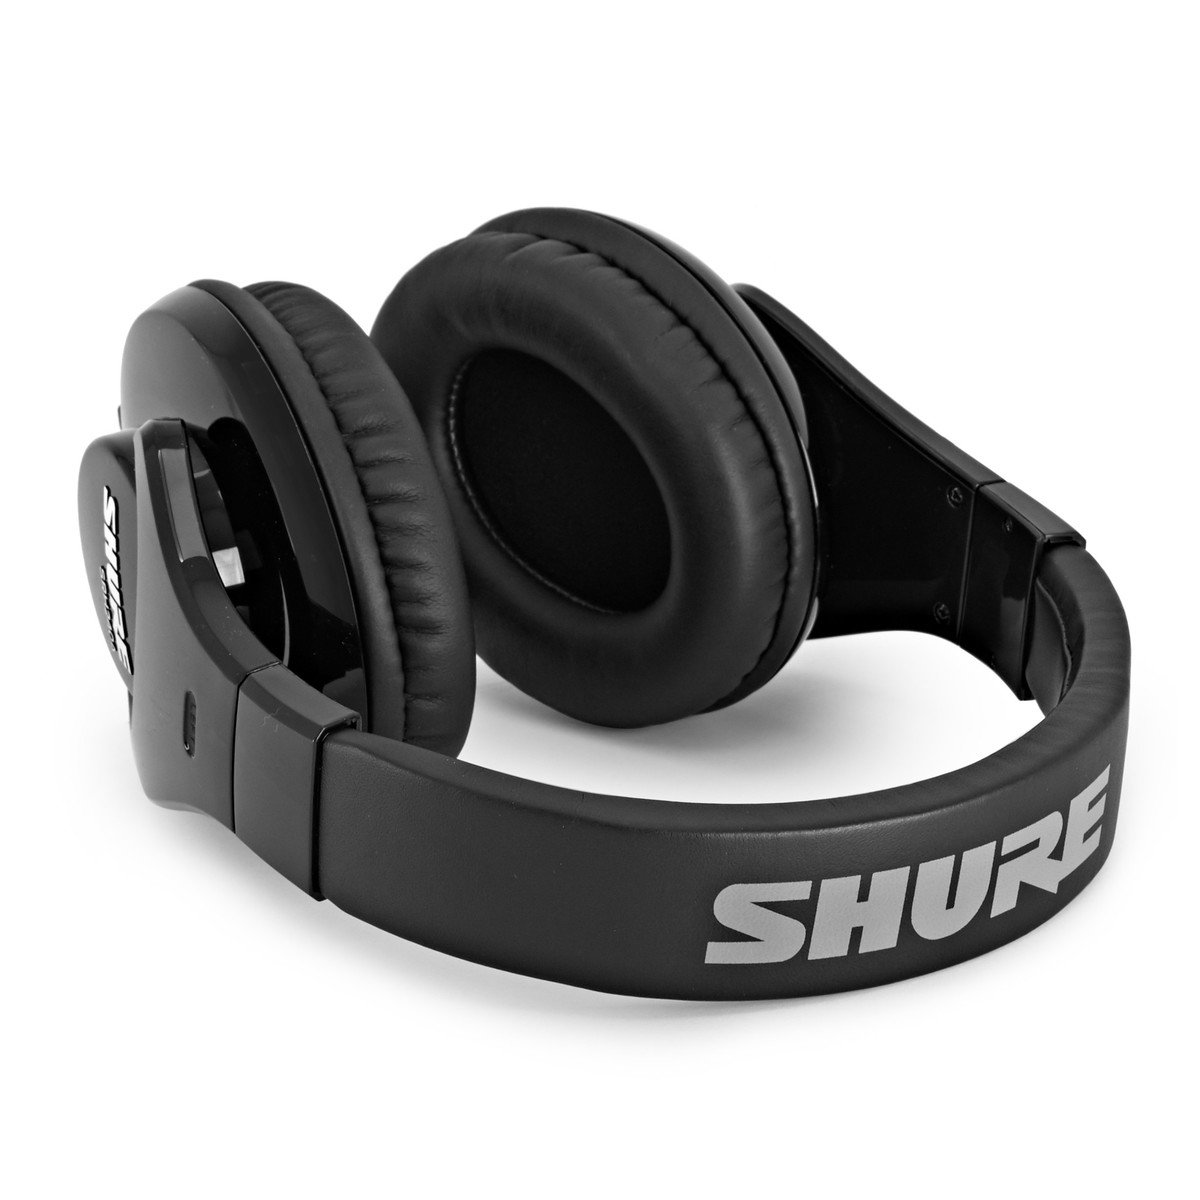 Auriculares Shure SRH240A – CYC PRO